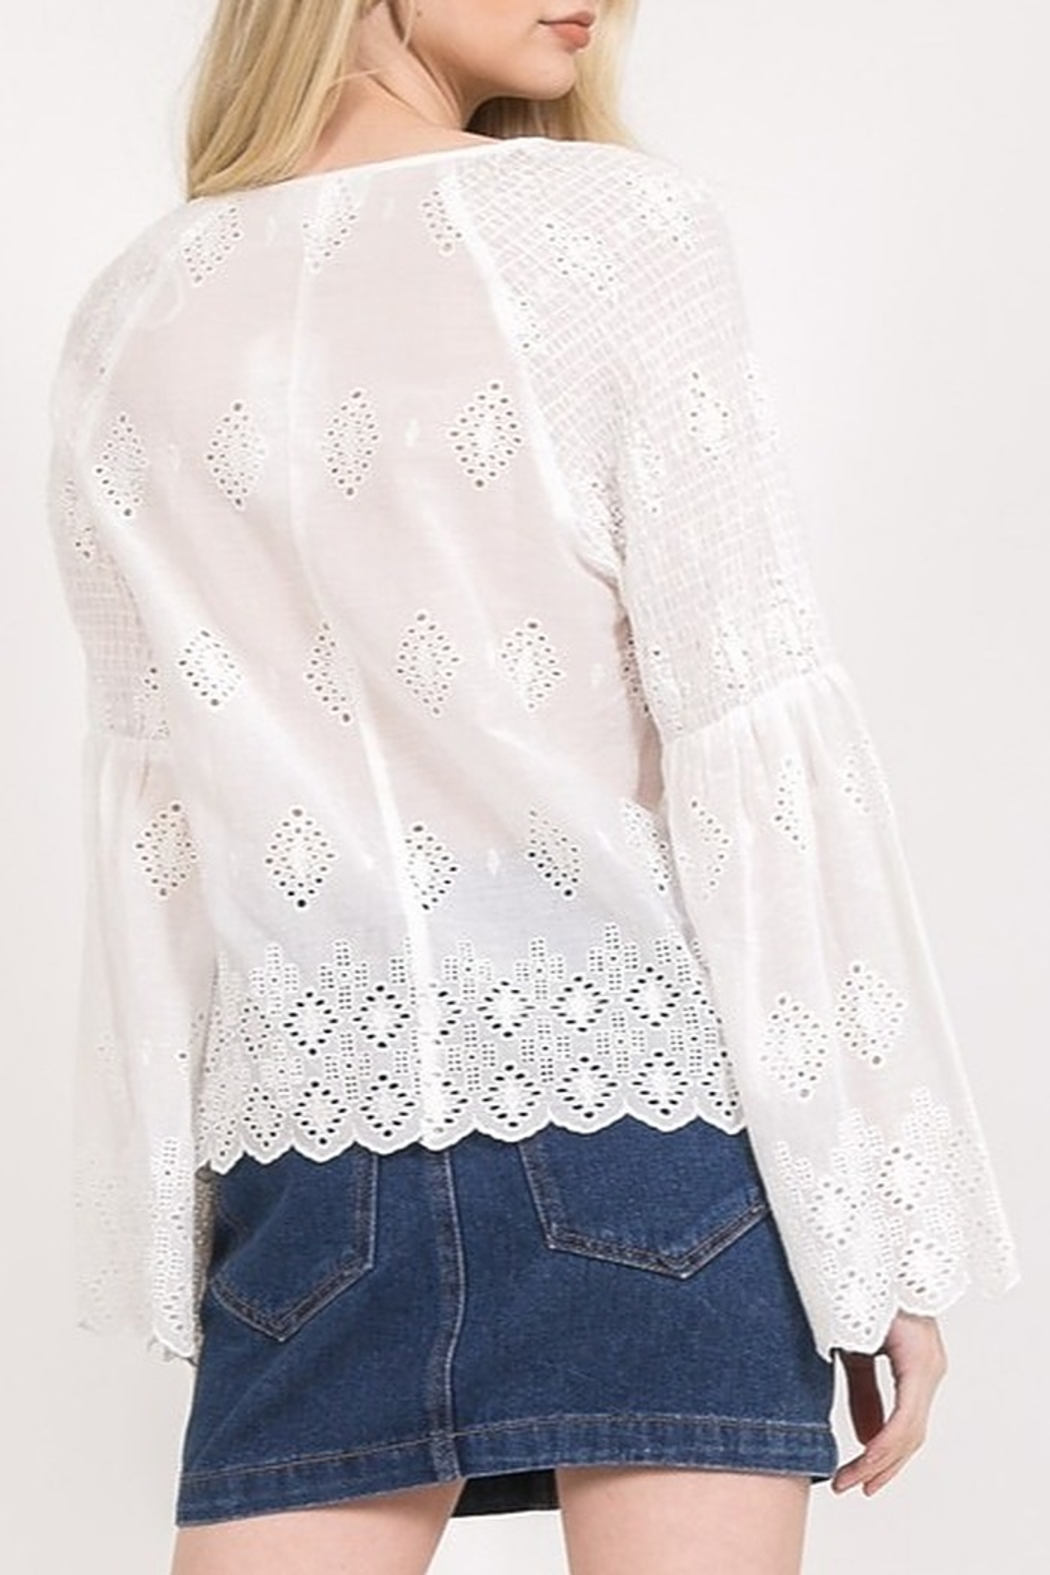 Very J Eyelet Lace Blouse - Side Cropped Image